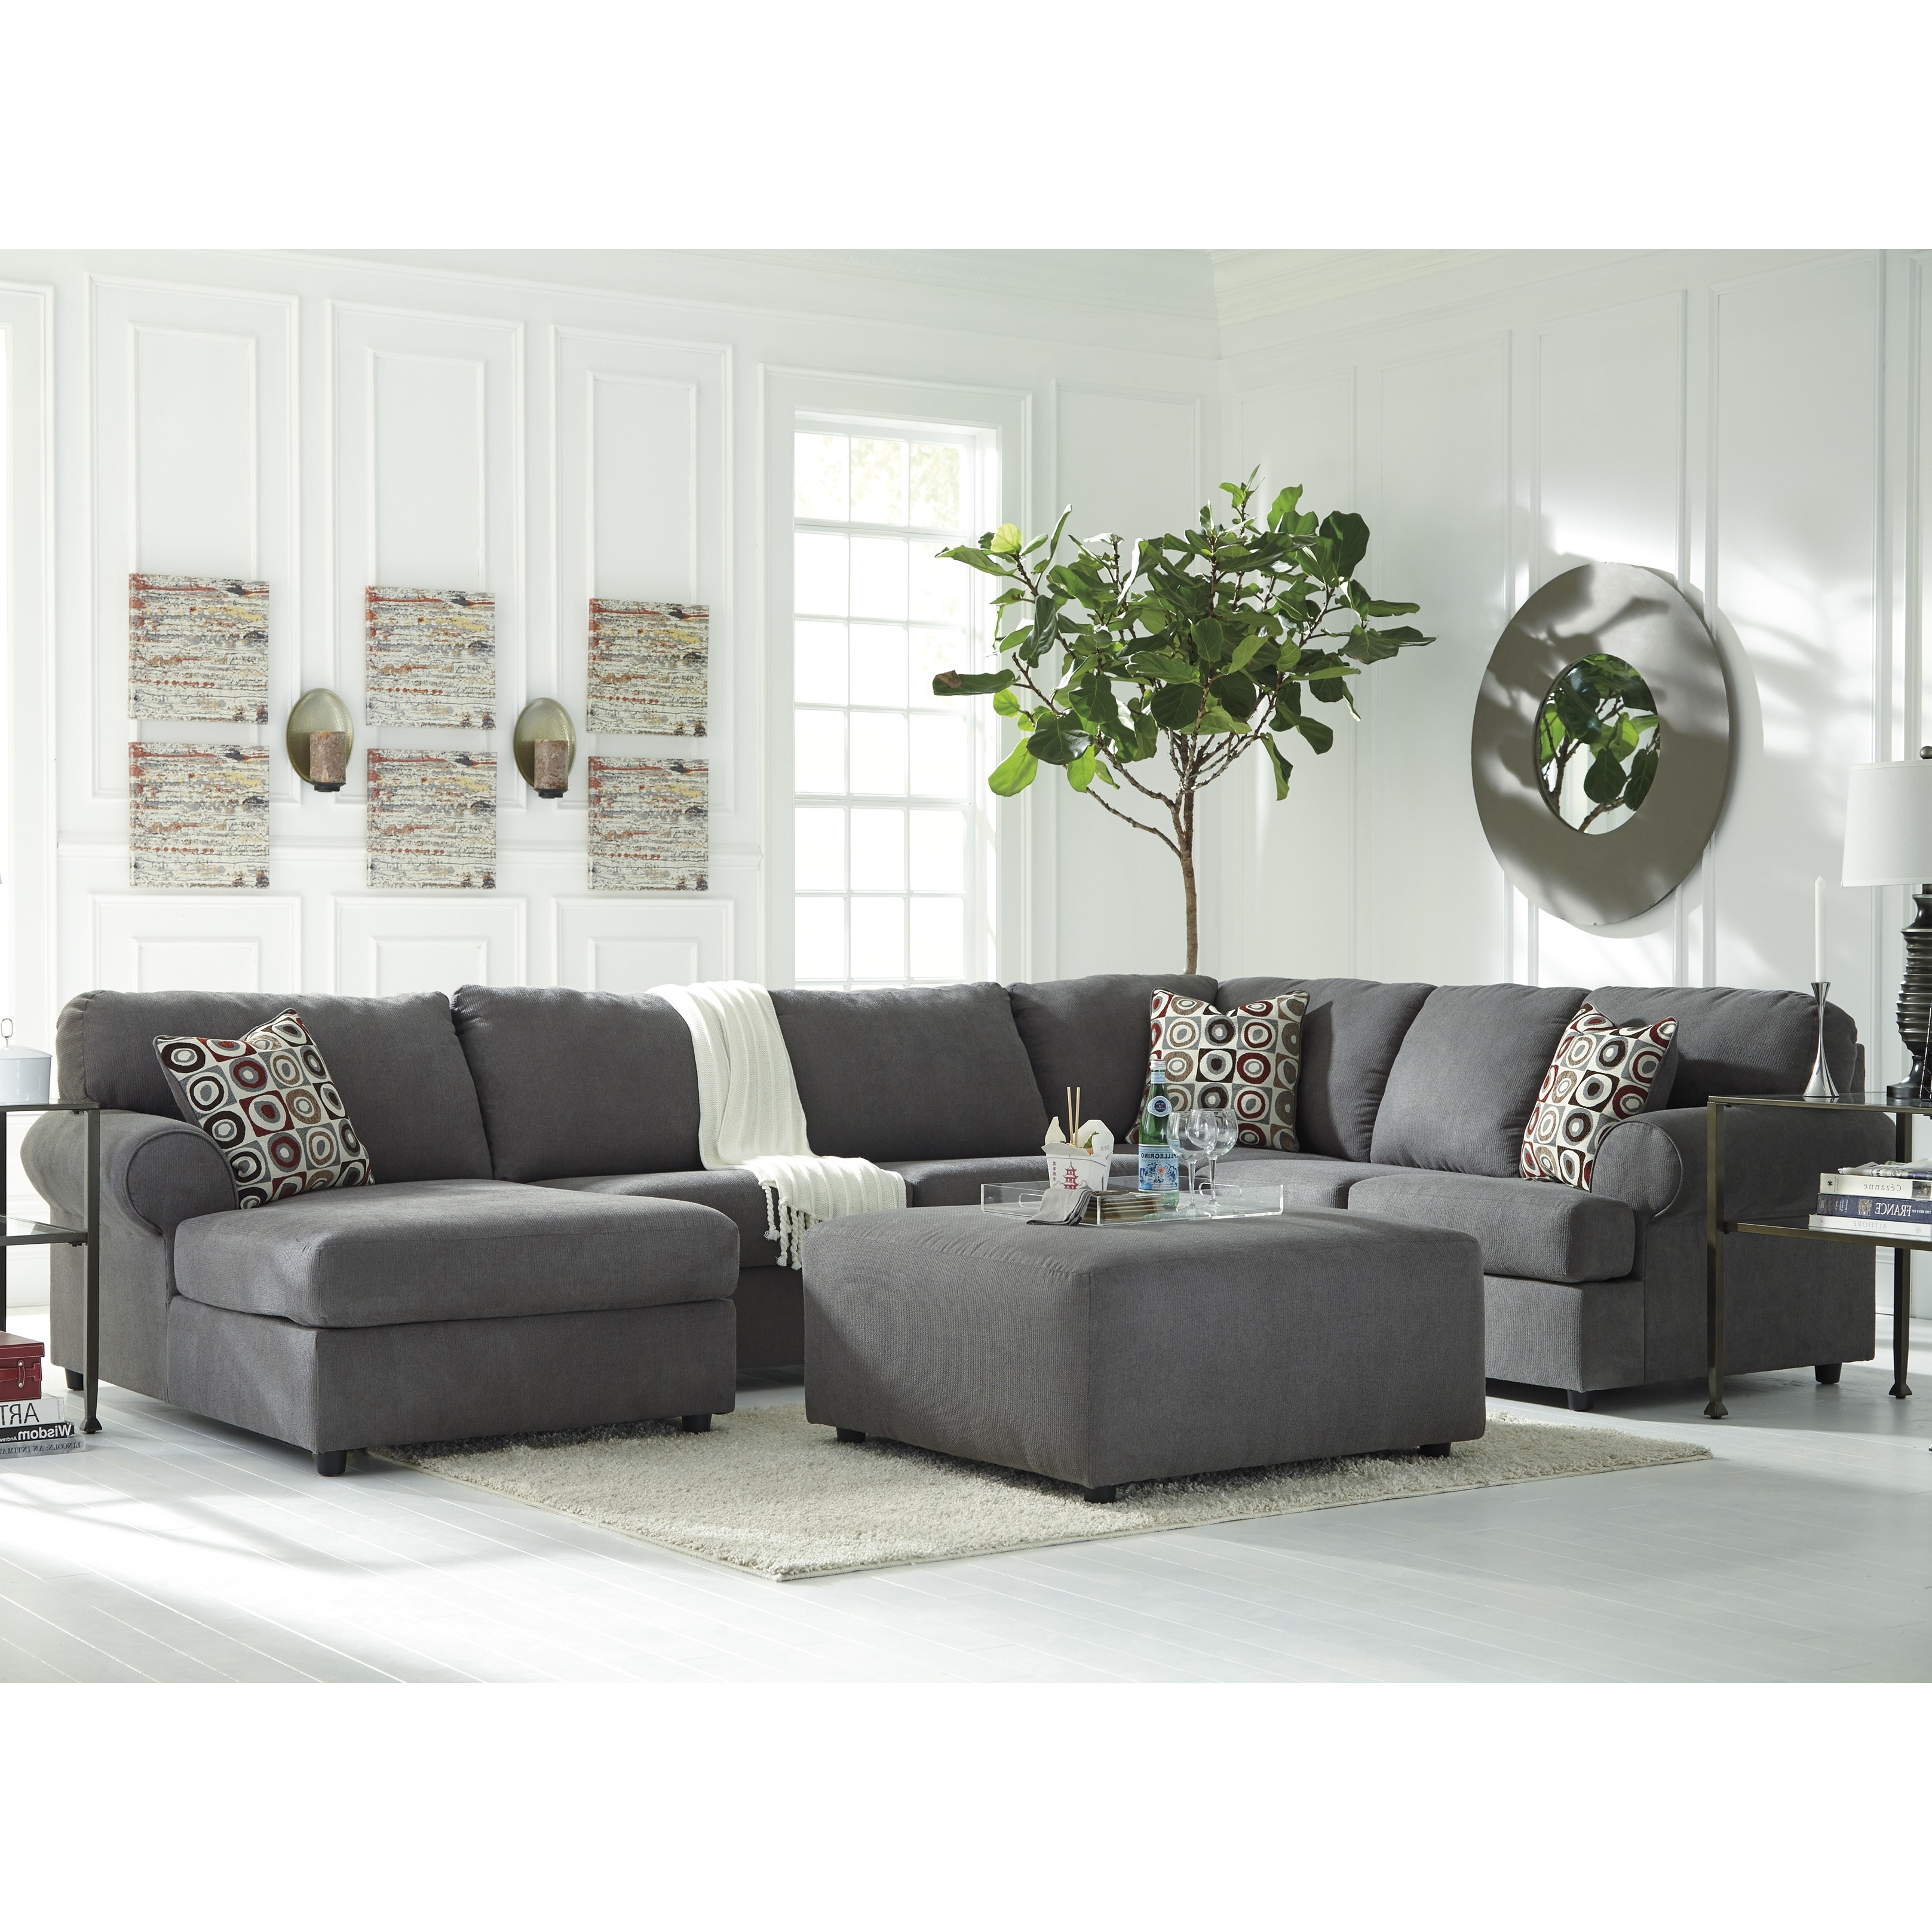 Well Known Ventura County Sectional Sofas In Sellersville Reversible Sectional (View 10 of 20)